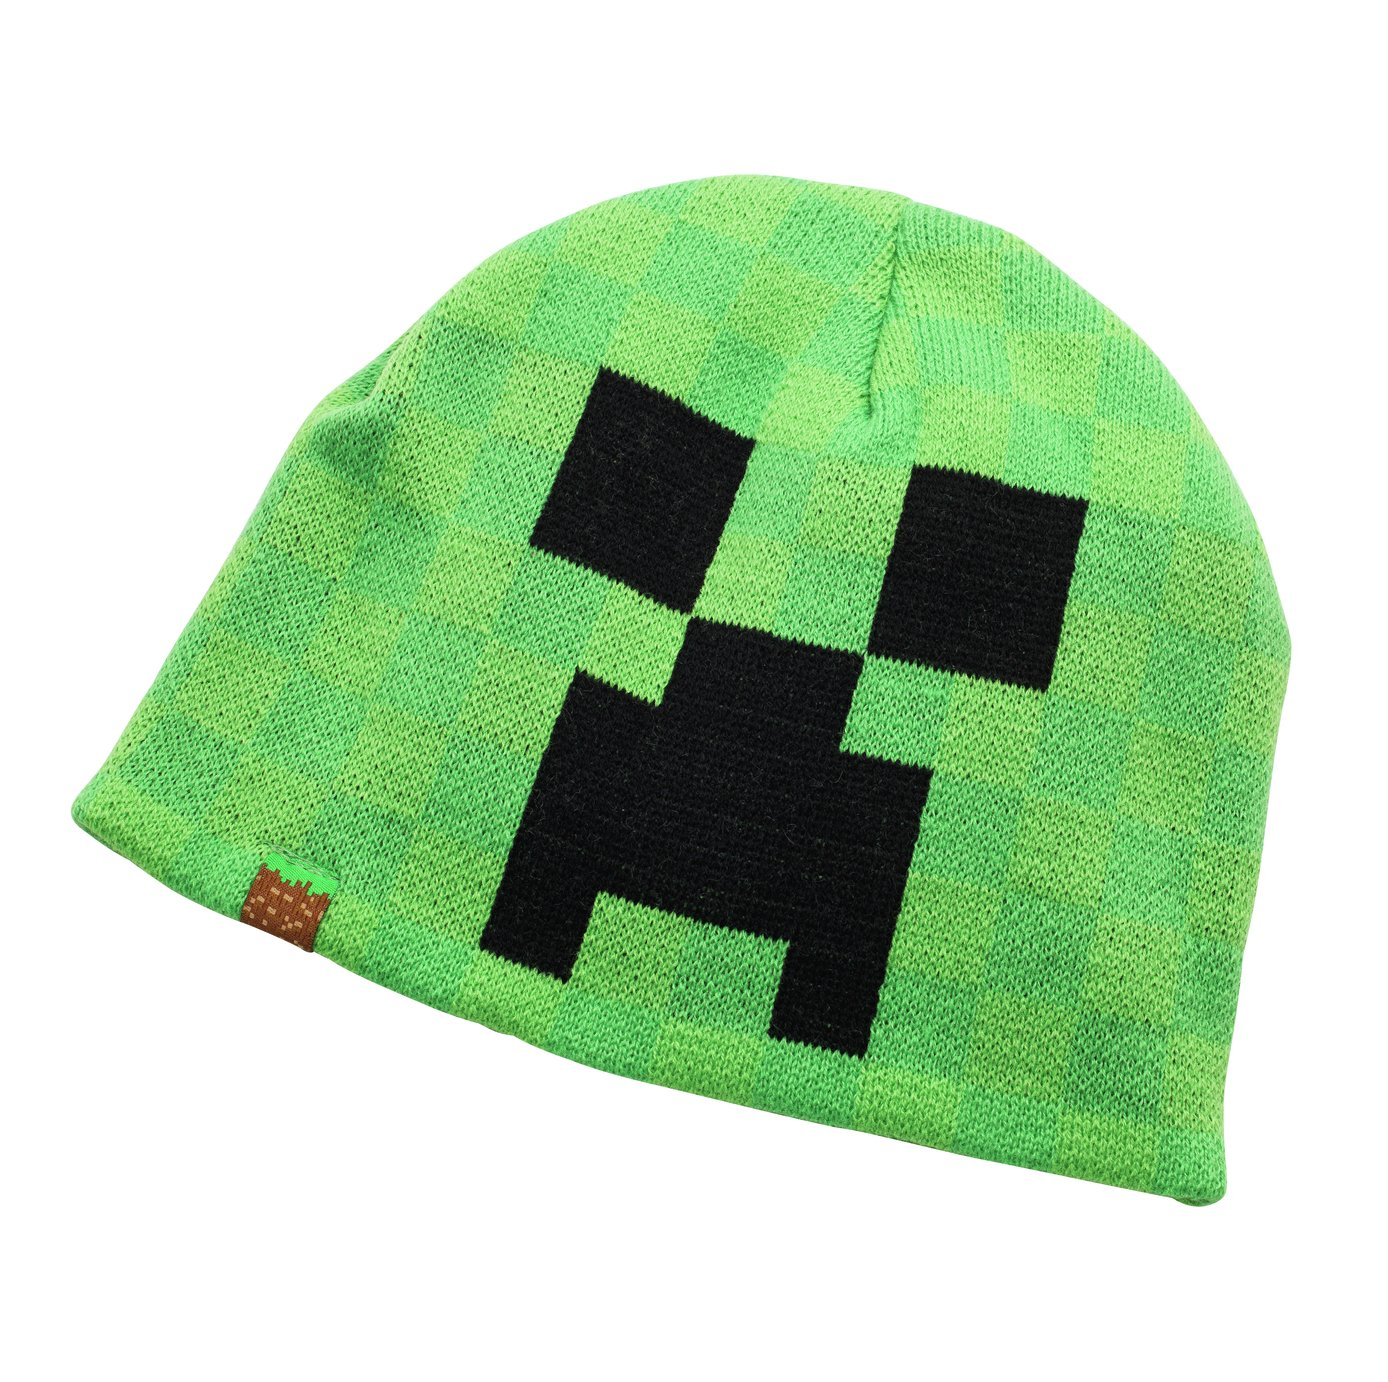 Image of Minecraft - Boys Green Beanie Hat - 7-10 Years